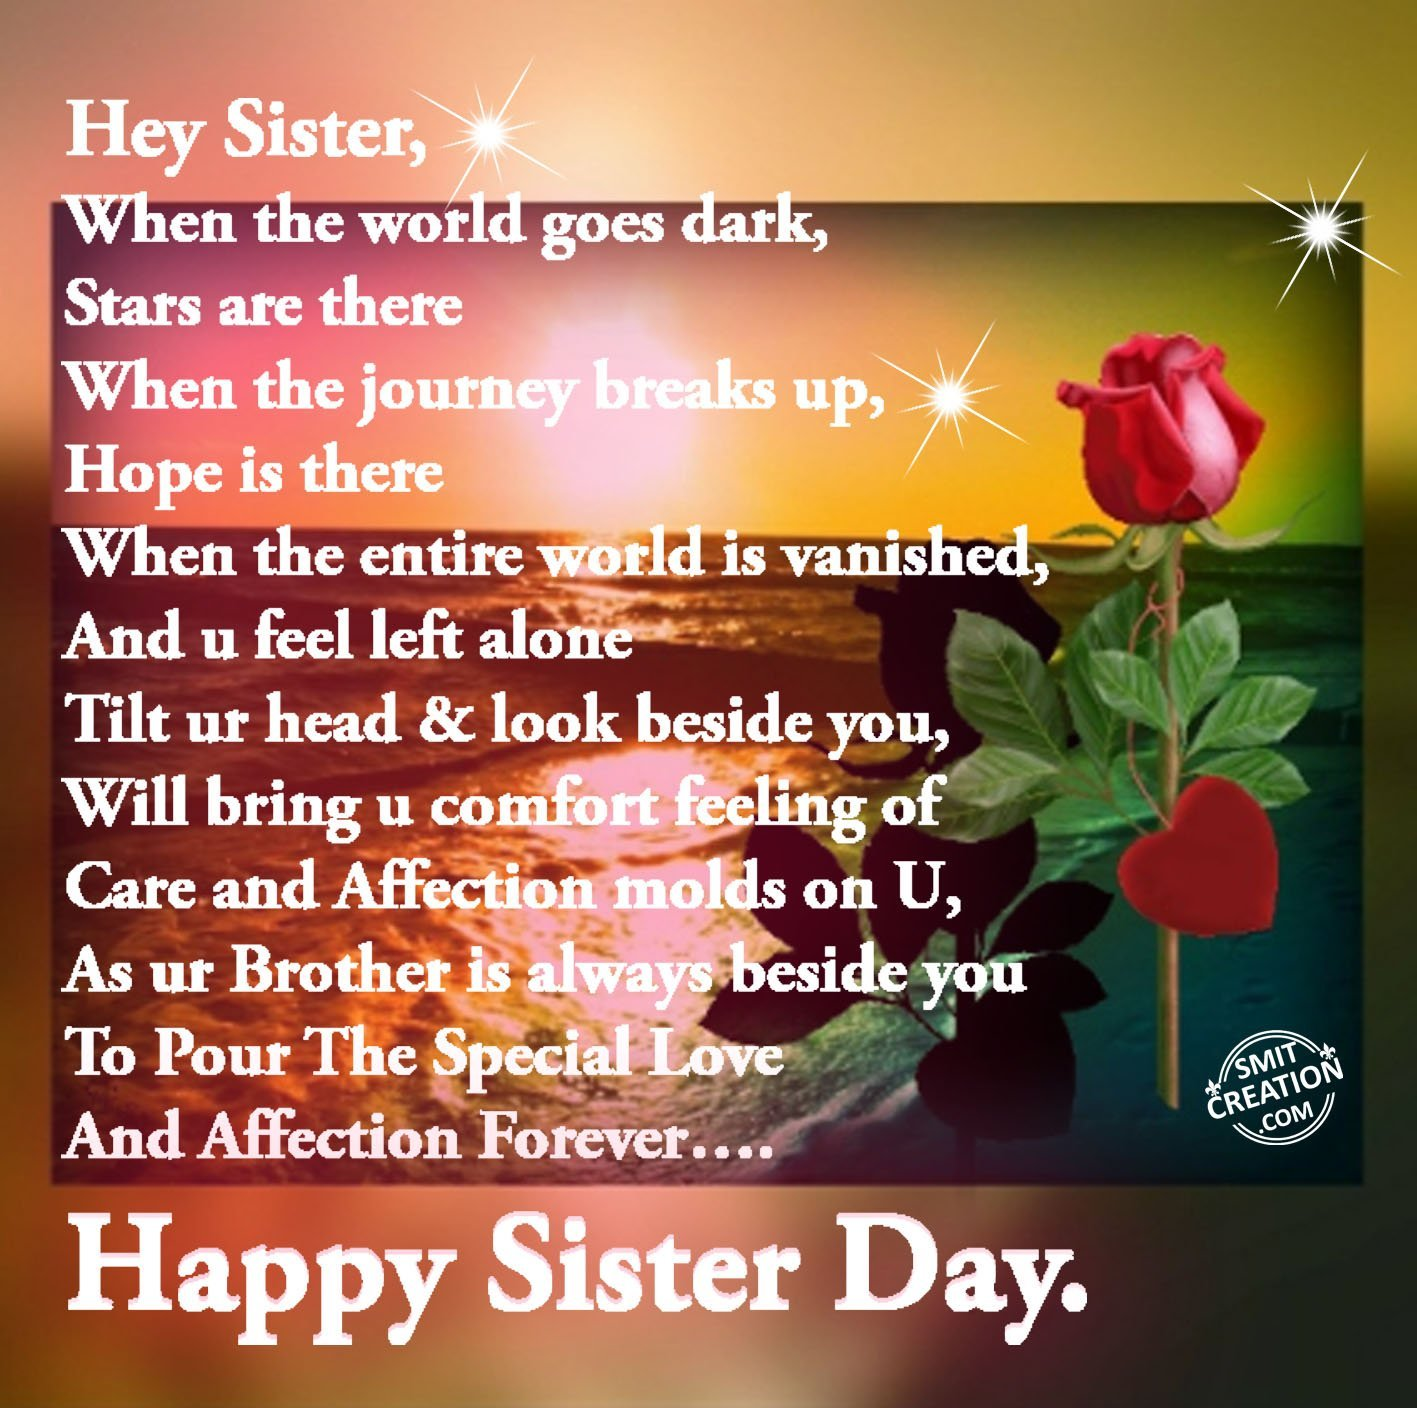 50 National Sisters Day 2018 Greeting Pictures And Images